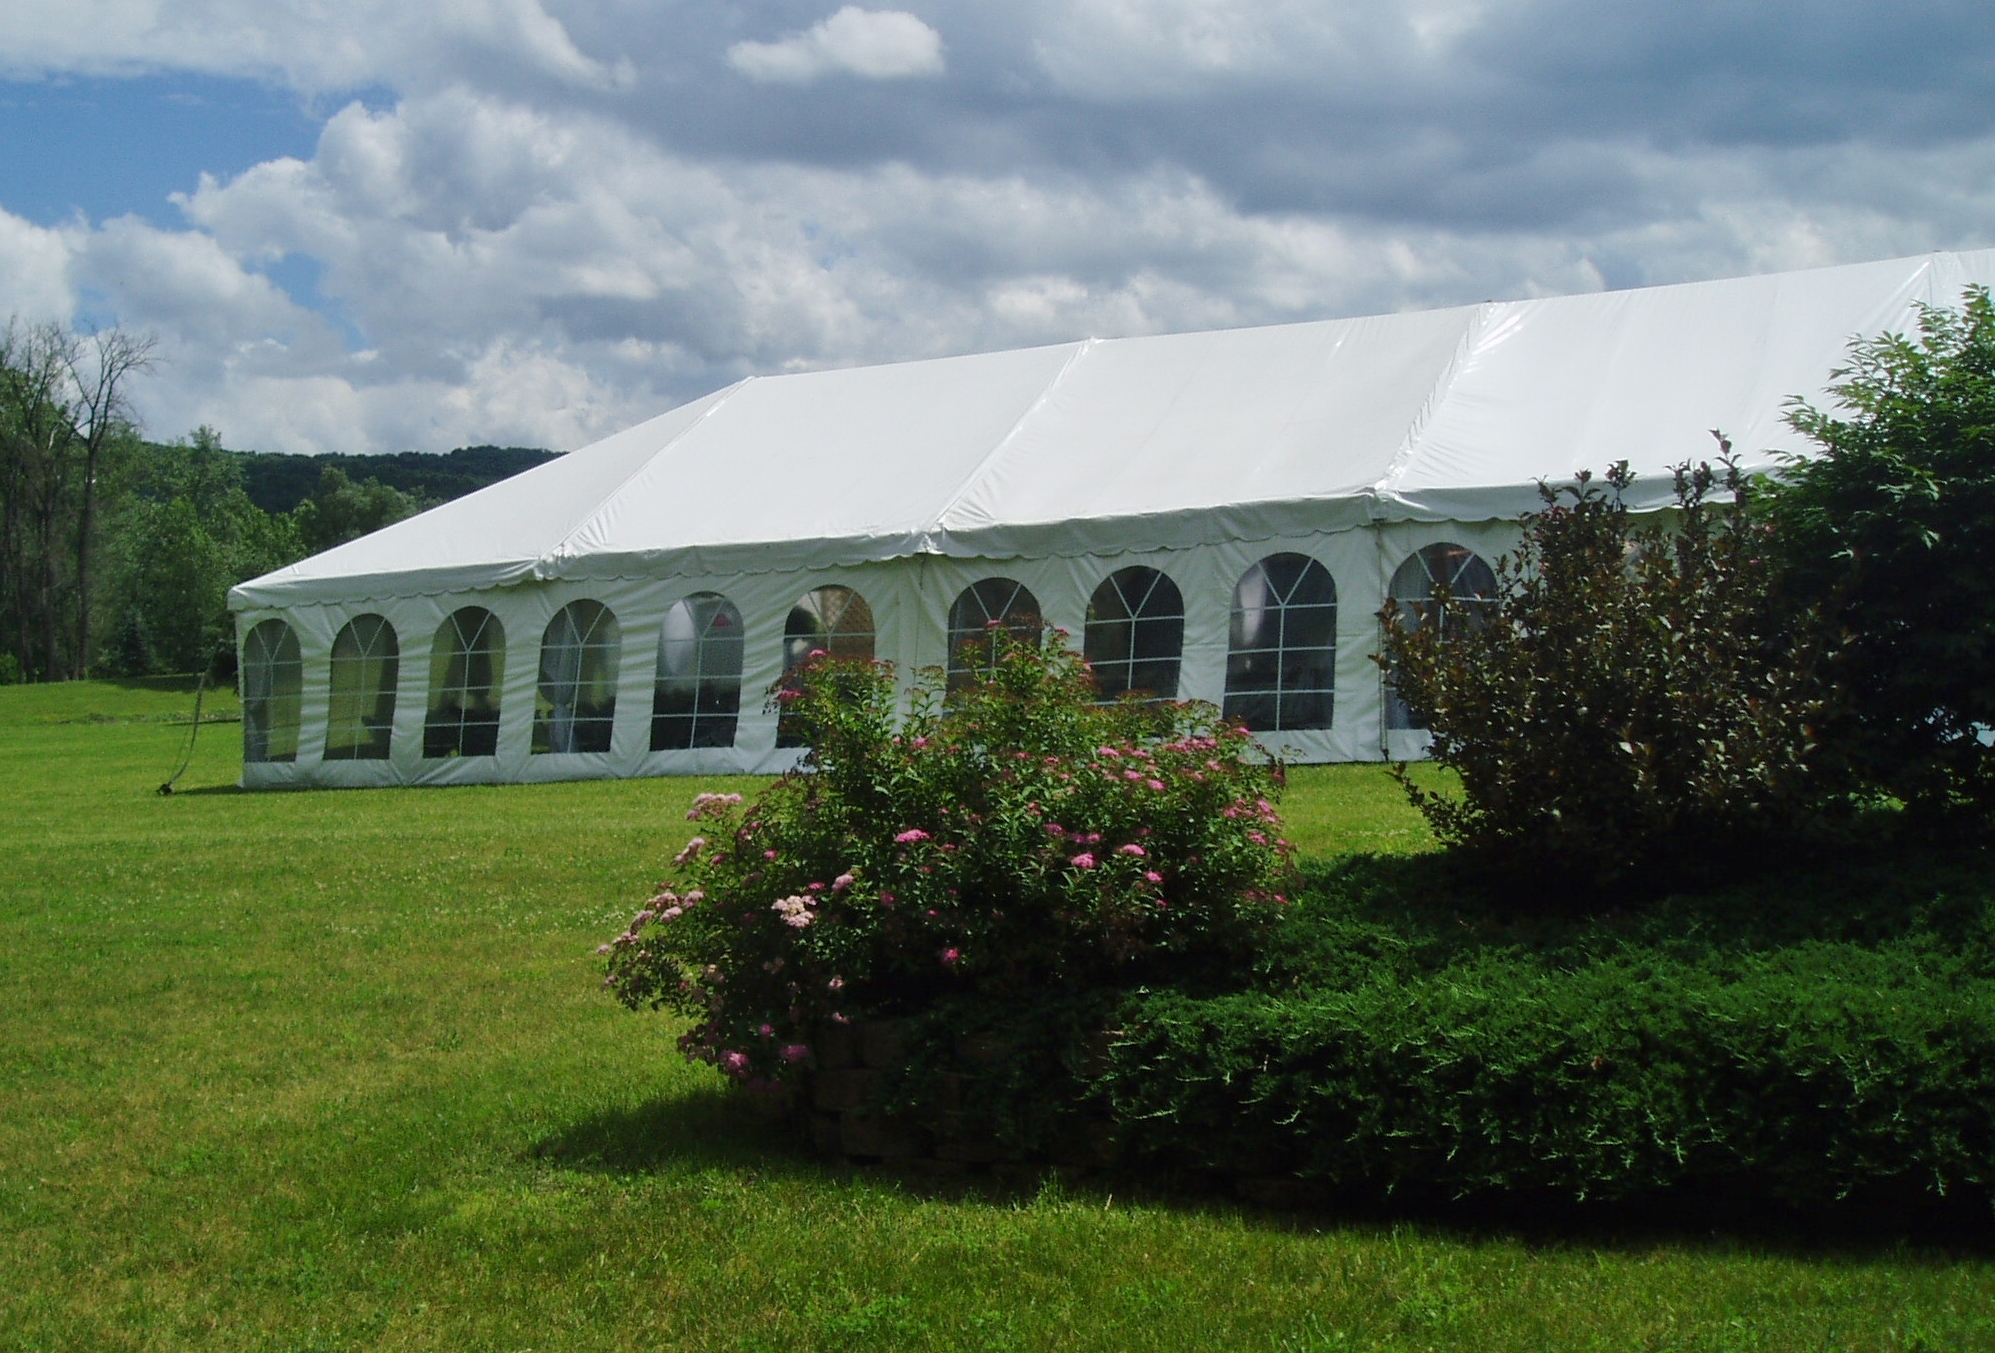 Large Tent with Windows